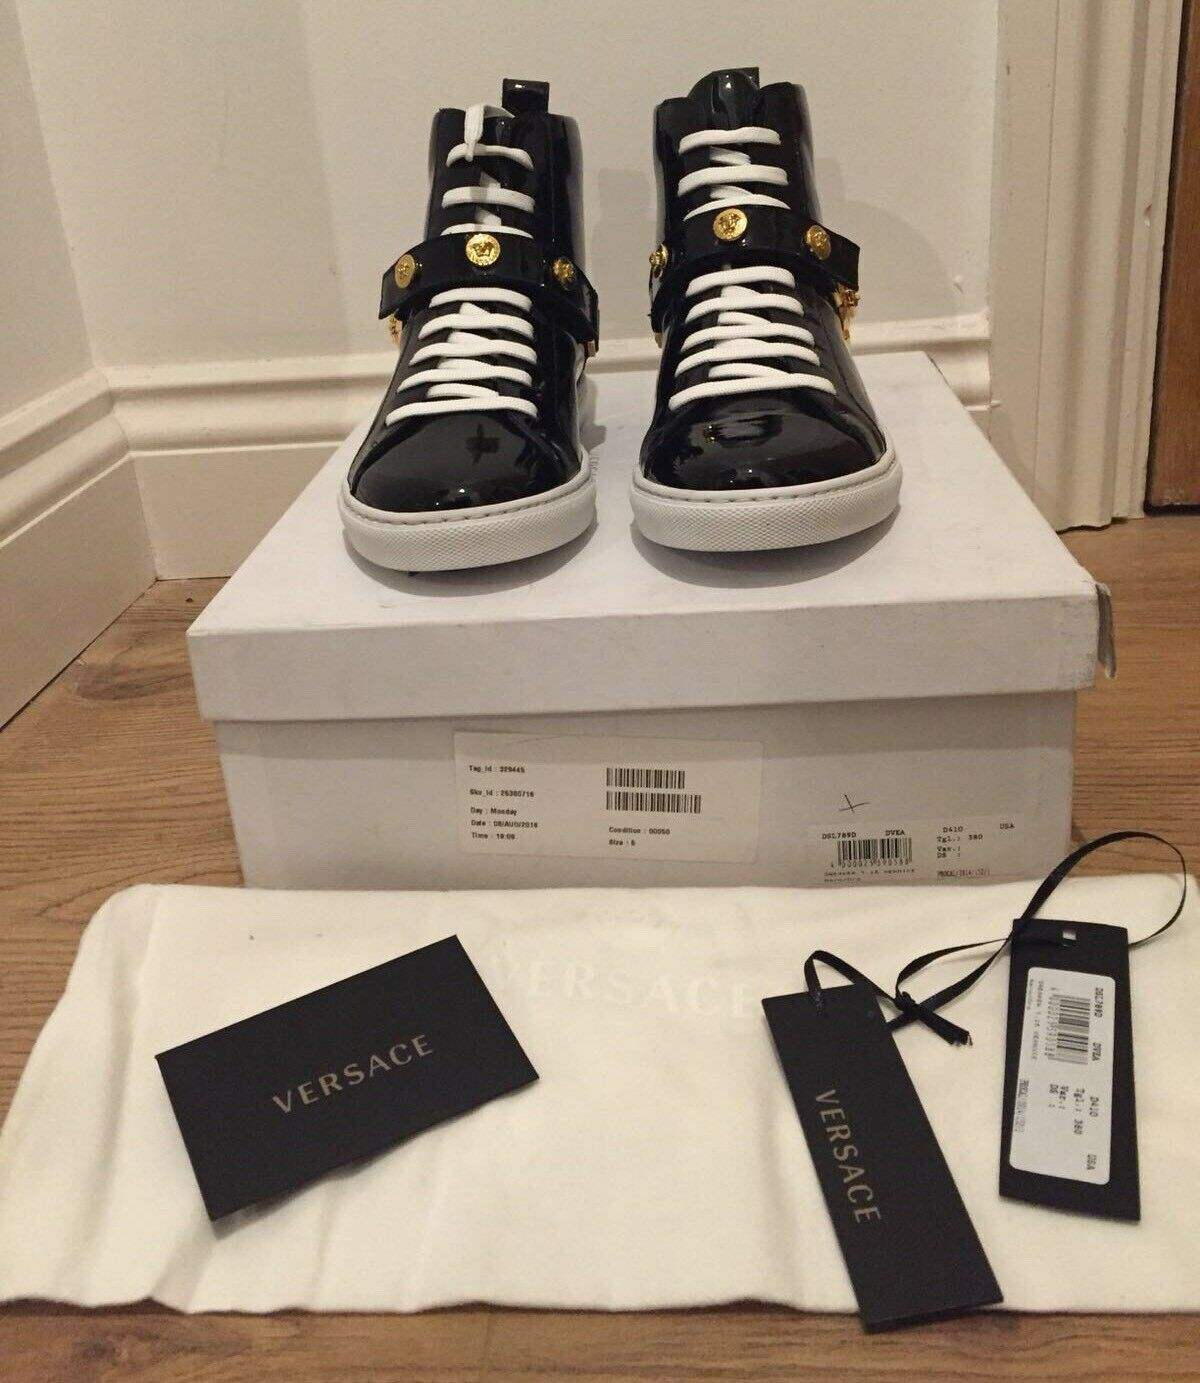 Versace Black Patent Leather Trainers With Medusa Head gold Studs UK 5 EU 38